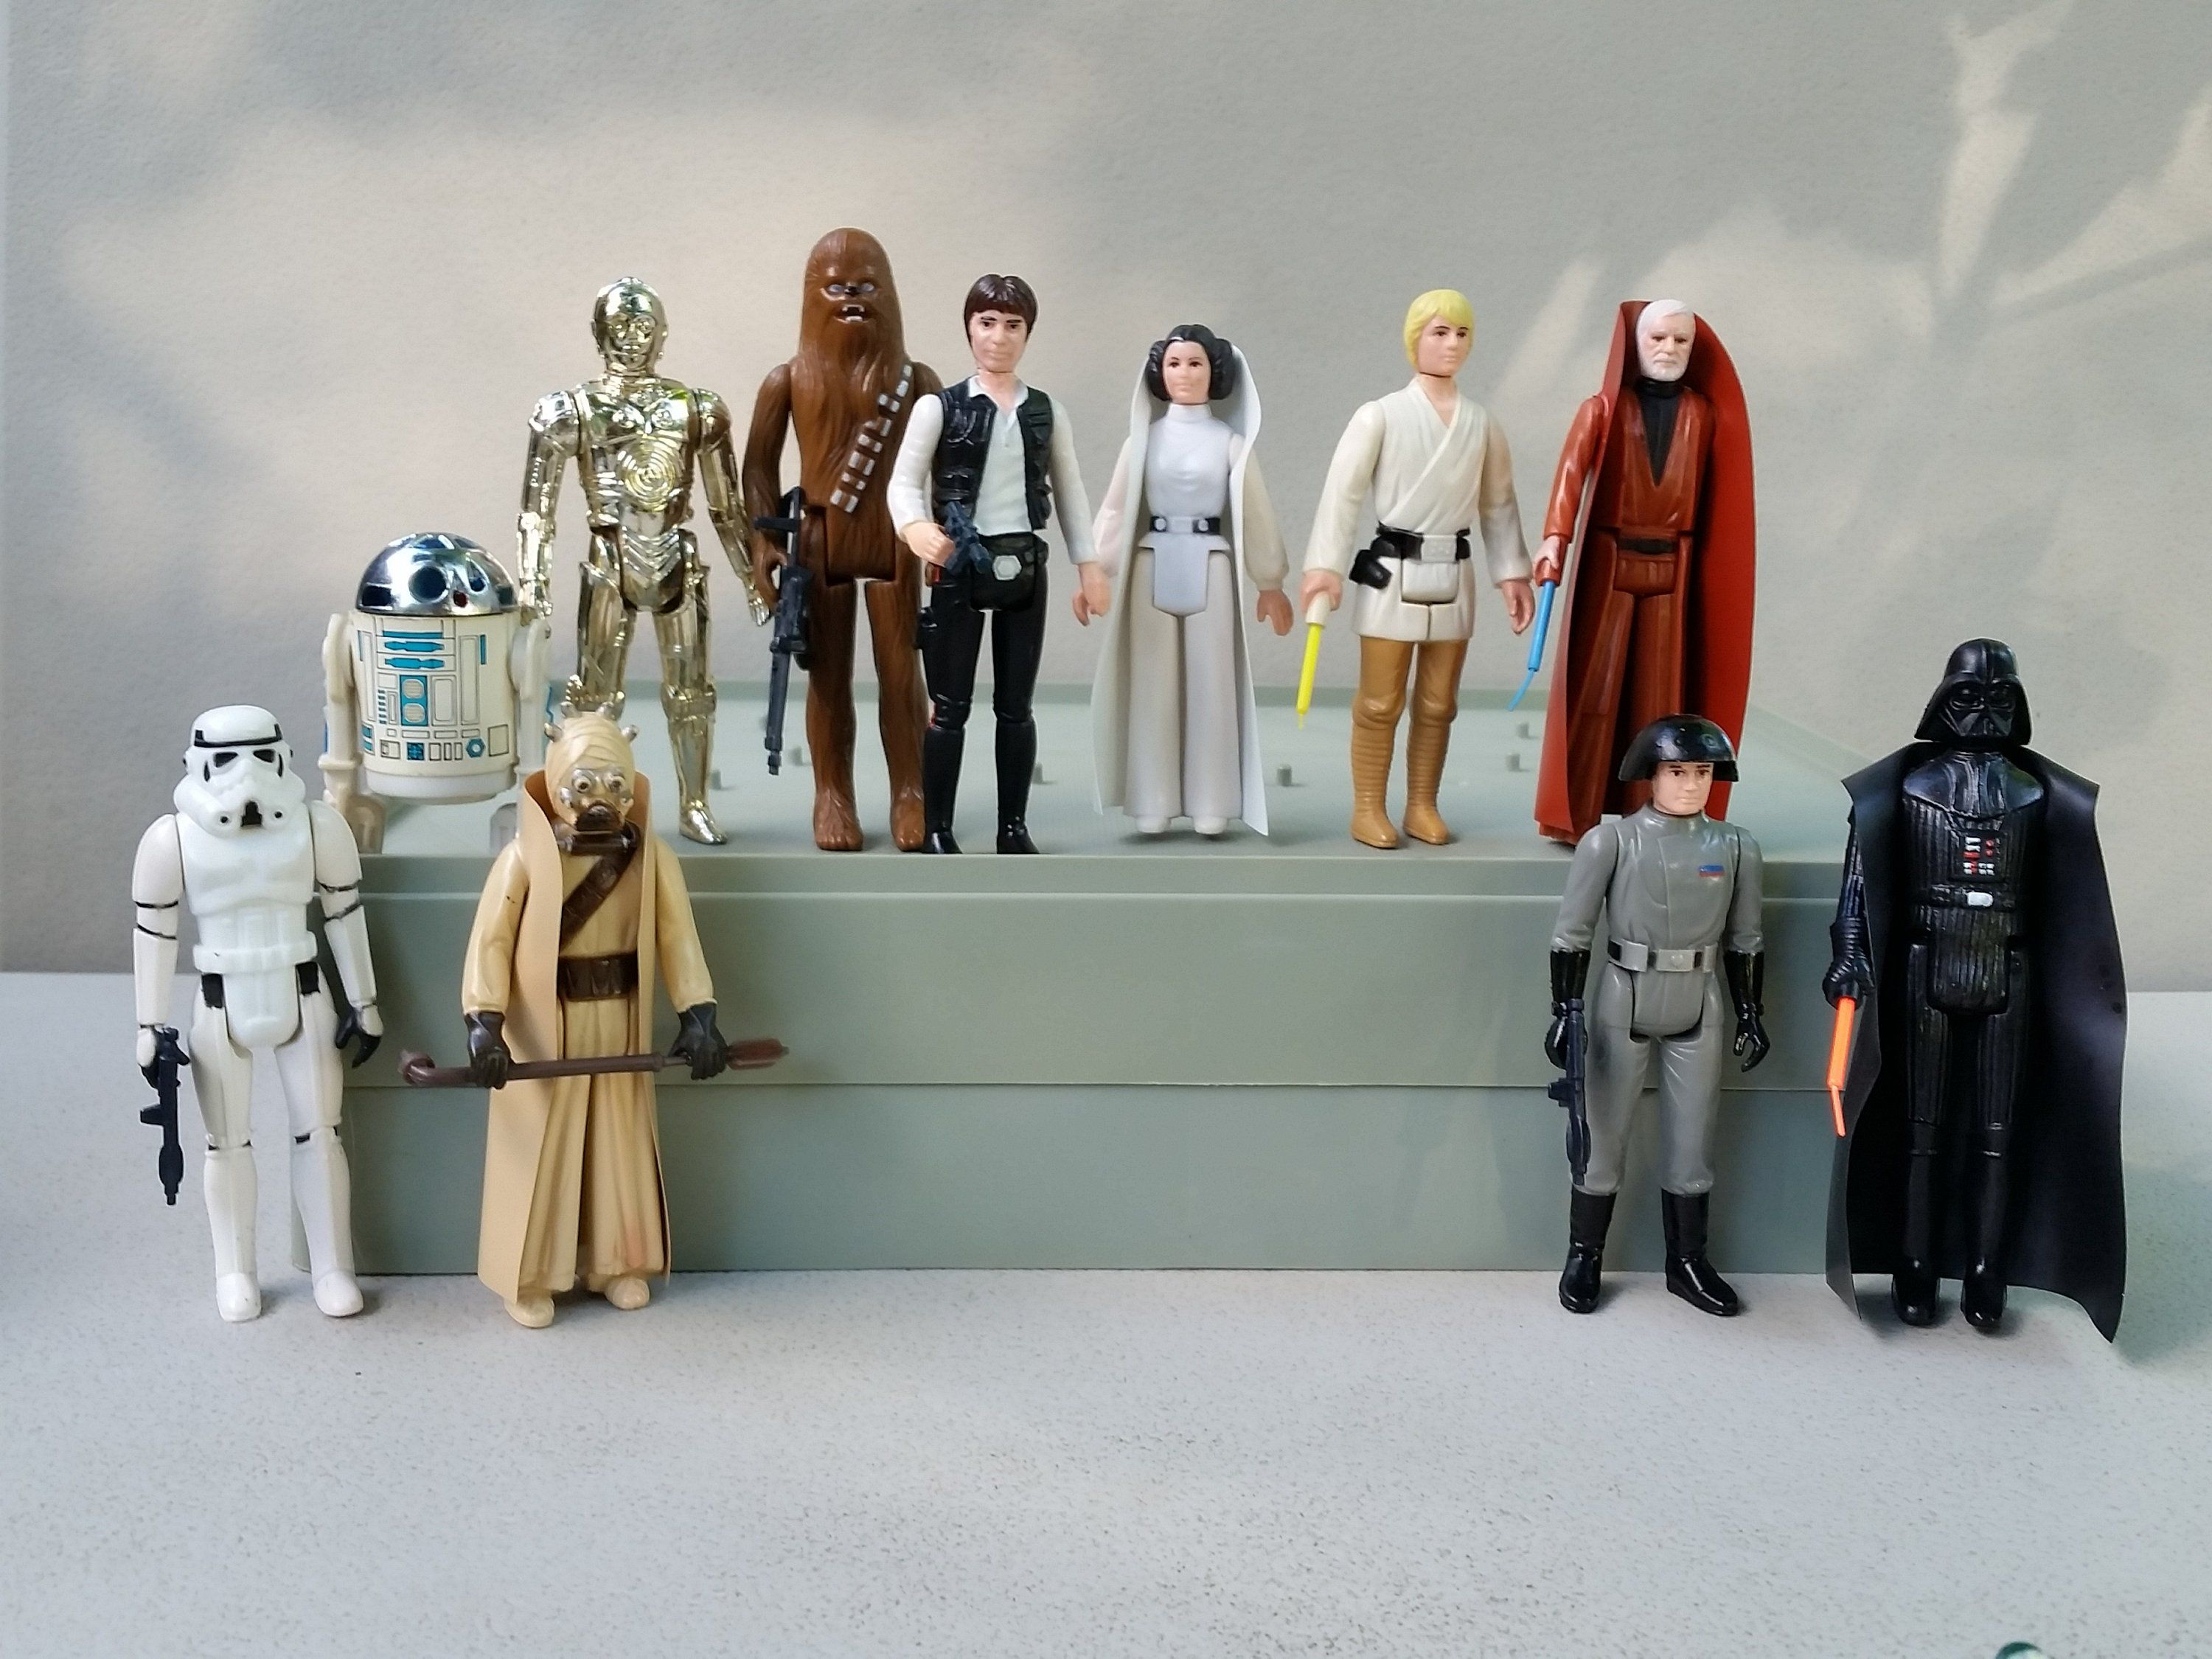 Kenner Star Wars Action Figures The First 12 Kenner Star Wars Action Figures Vintage Star Wars Action Figures Action Figures